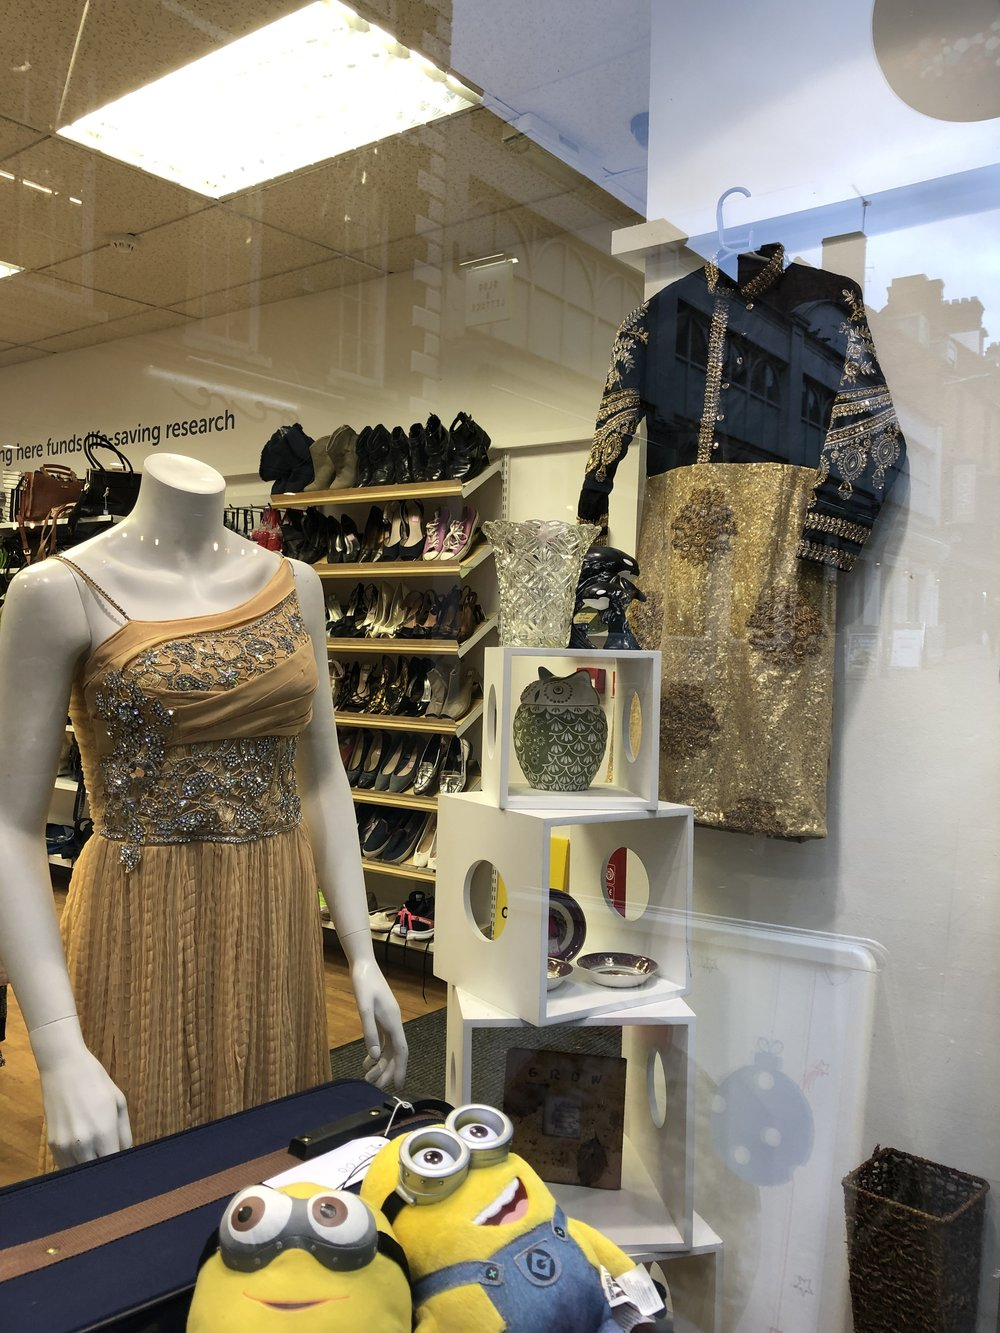 Glitz and glamour in nearby charity shops provide entertainment for serious bargain hunters